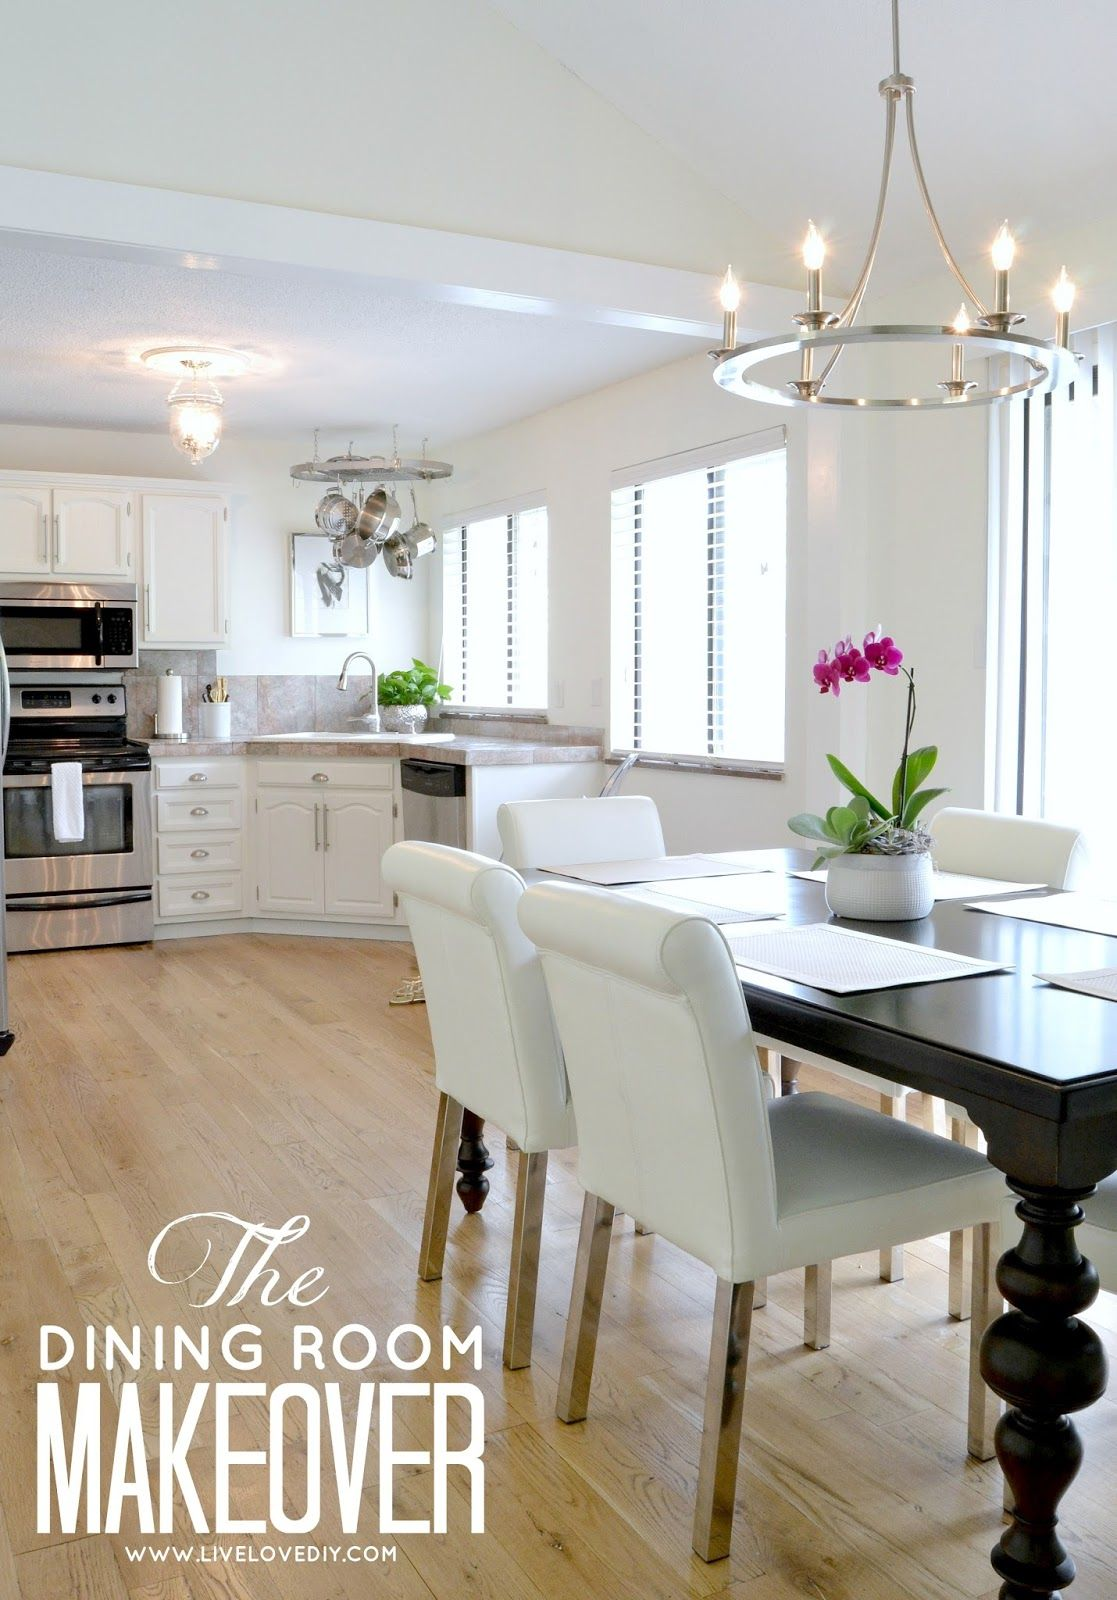 Kitchen make overs  Our us House Makeover Part  The Dining Room Reveal  My